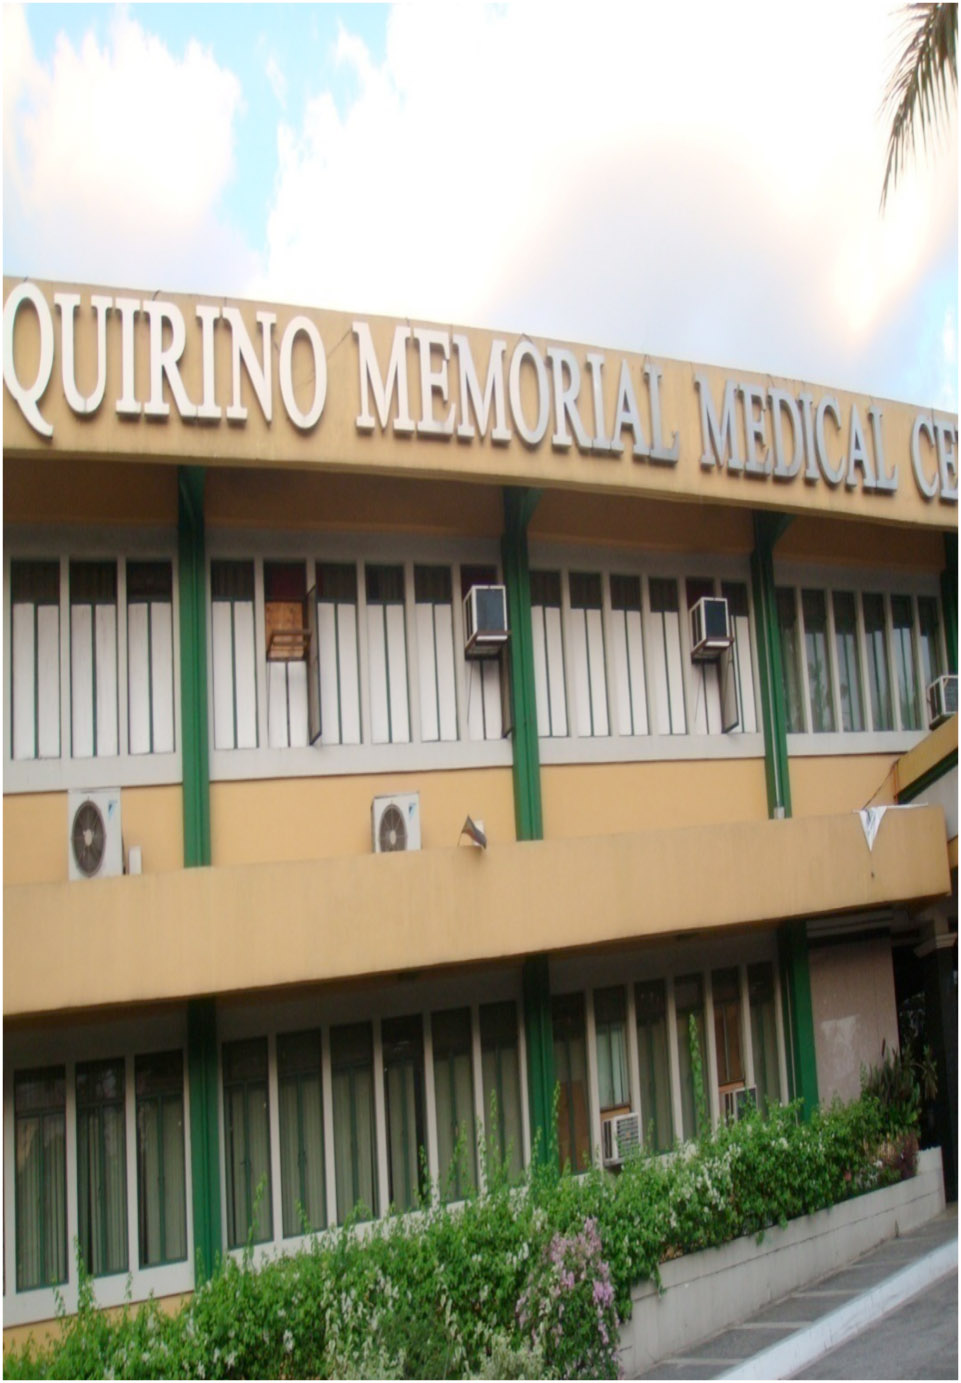 Einc Bulletin Feature Story The Quirino Memorial Medical Center Experience Accepting The Challenge Of Change